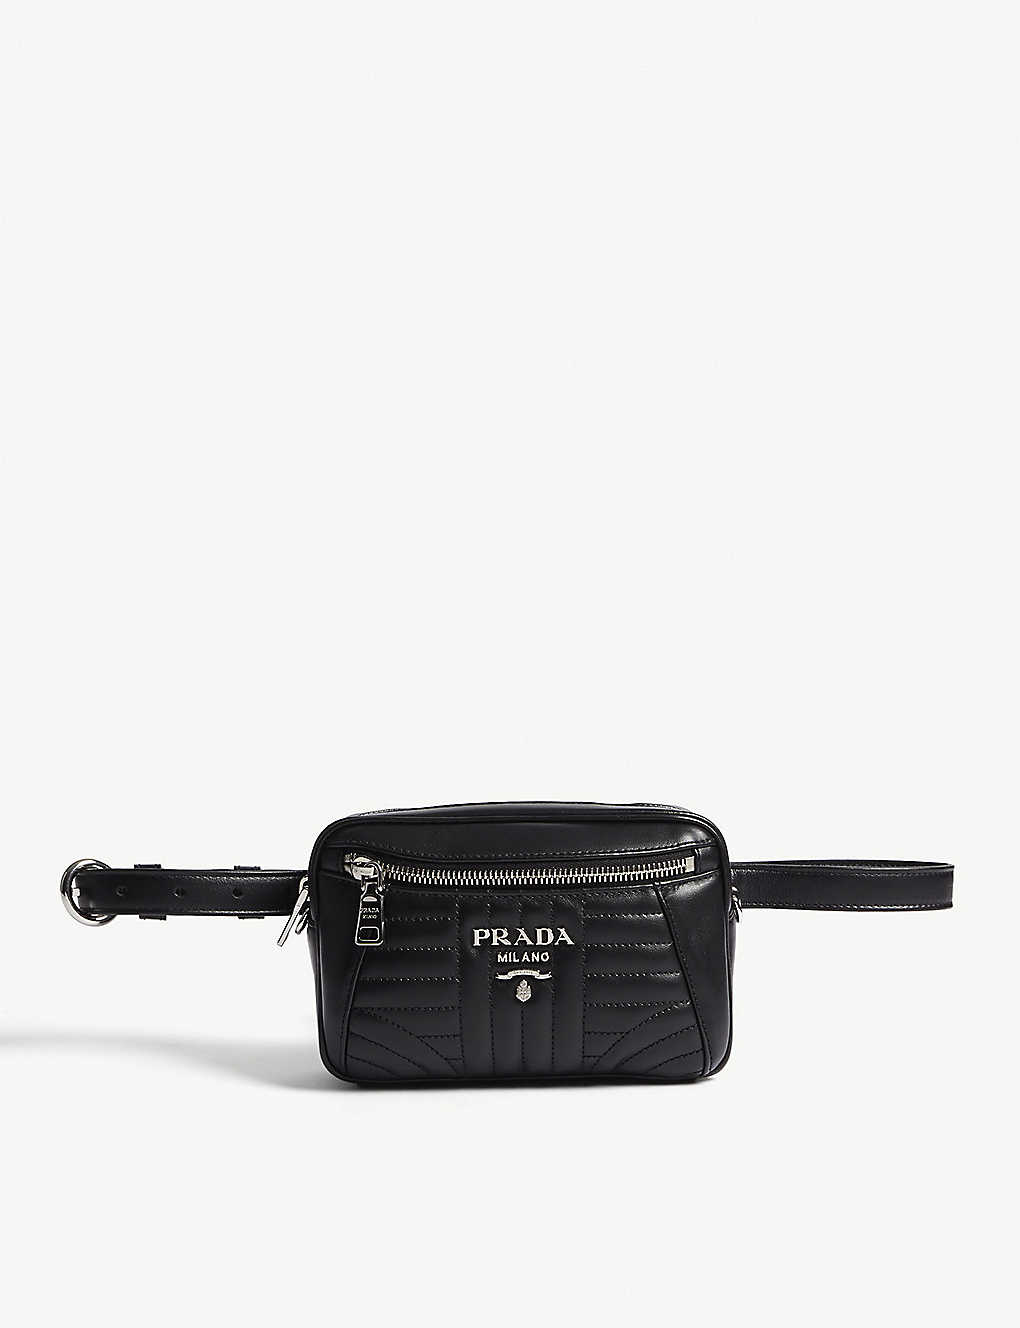 8aa2a8ee2fda PRADA - Small quilted leather belt bag | Selfridges.com